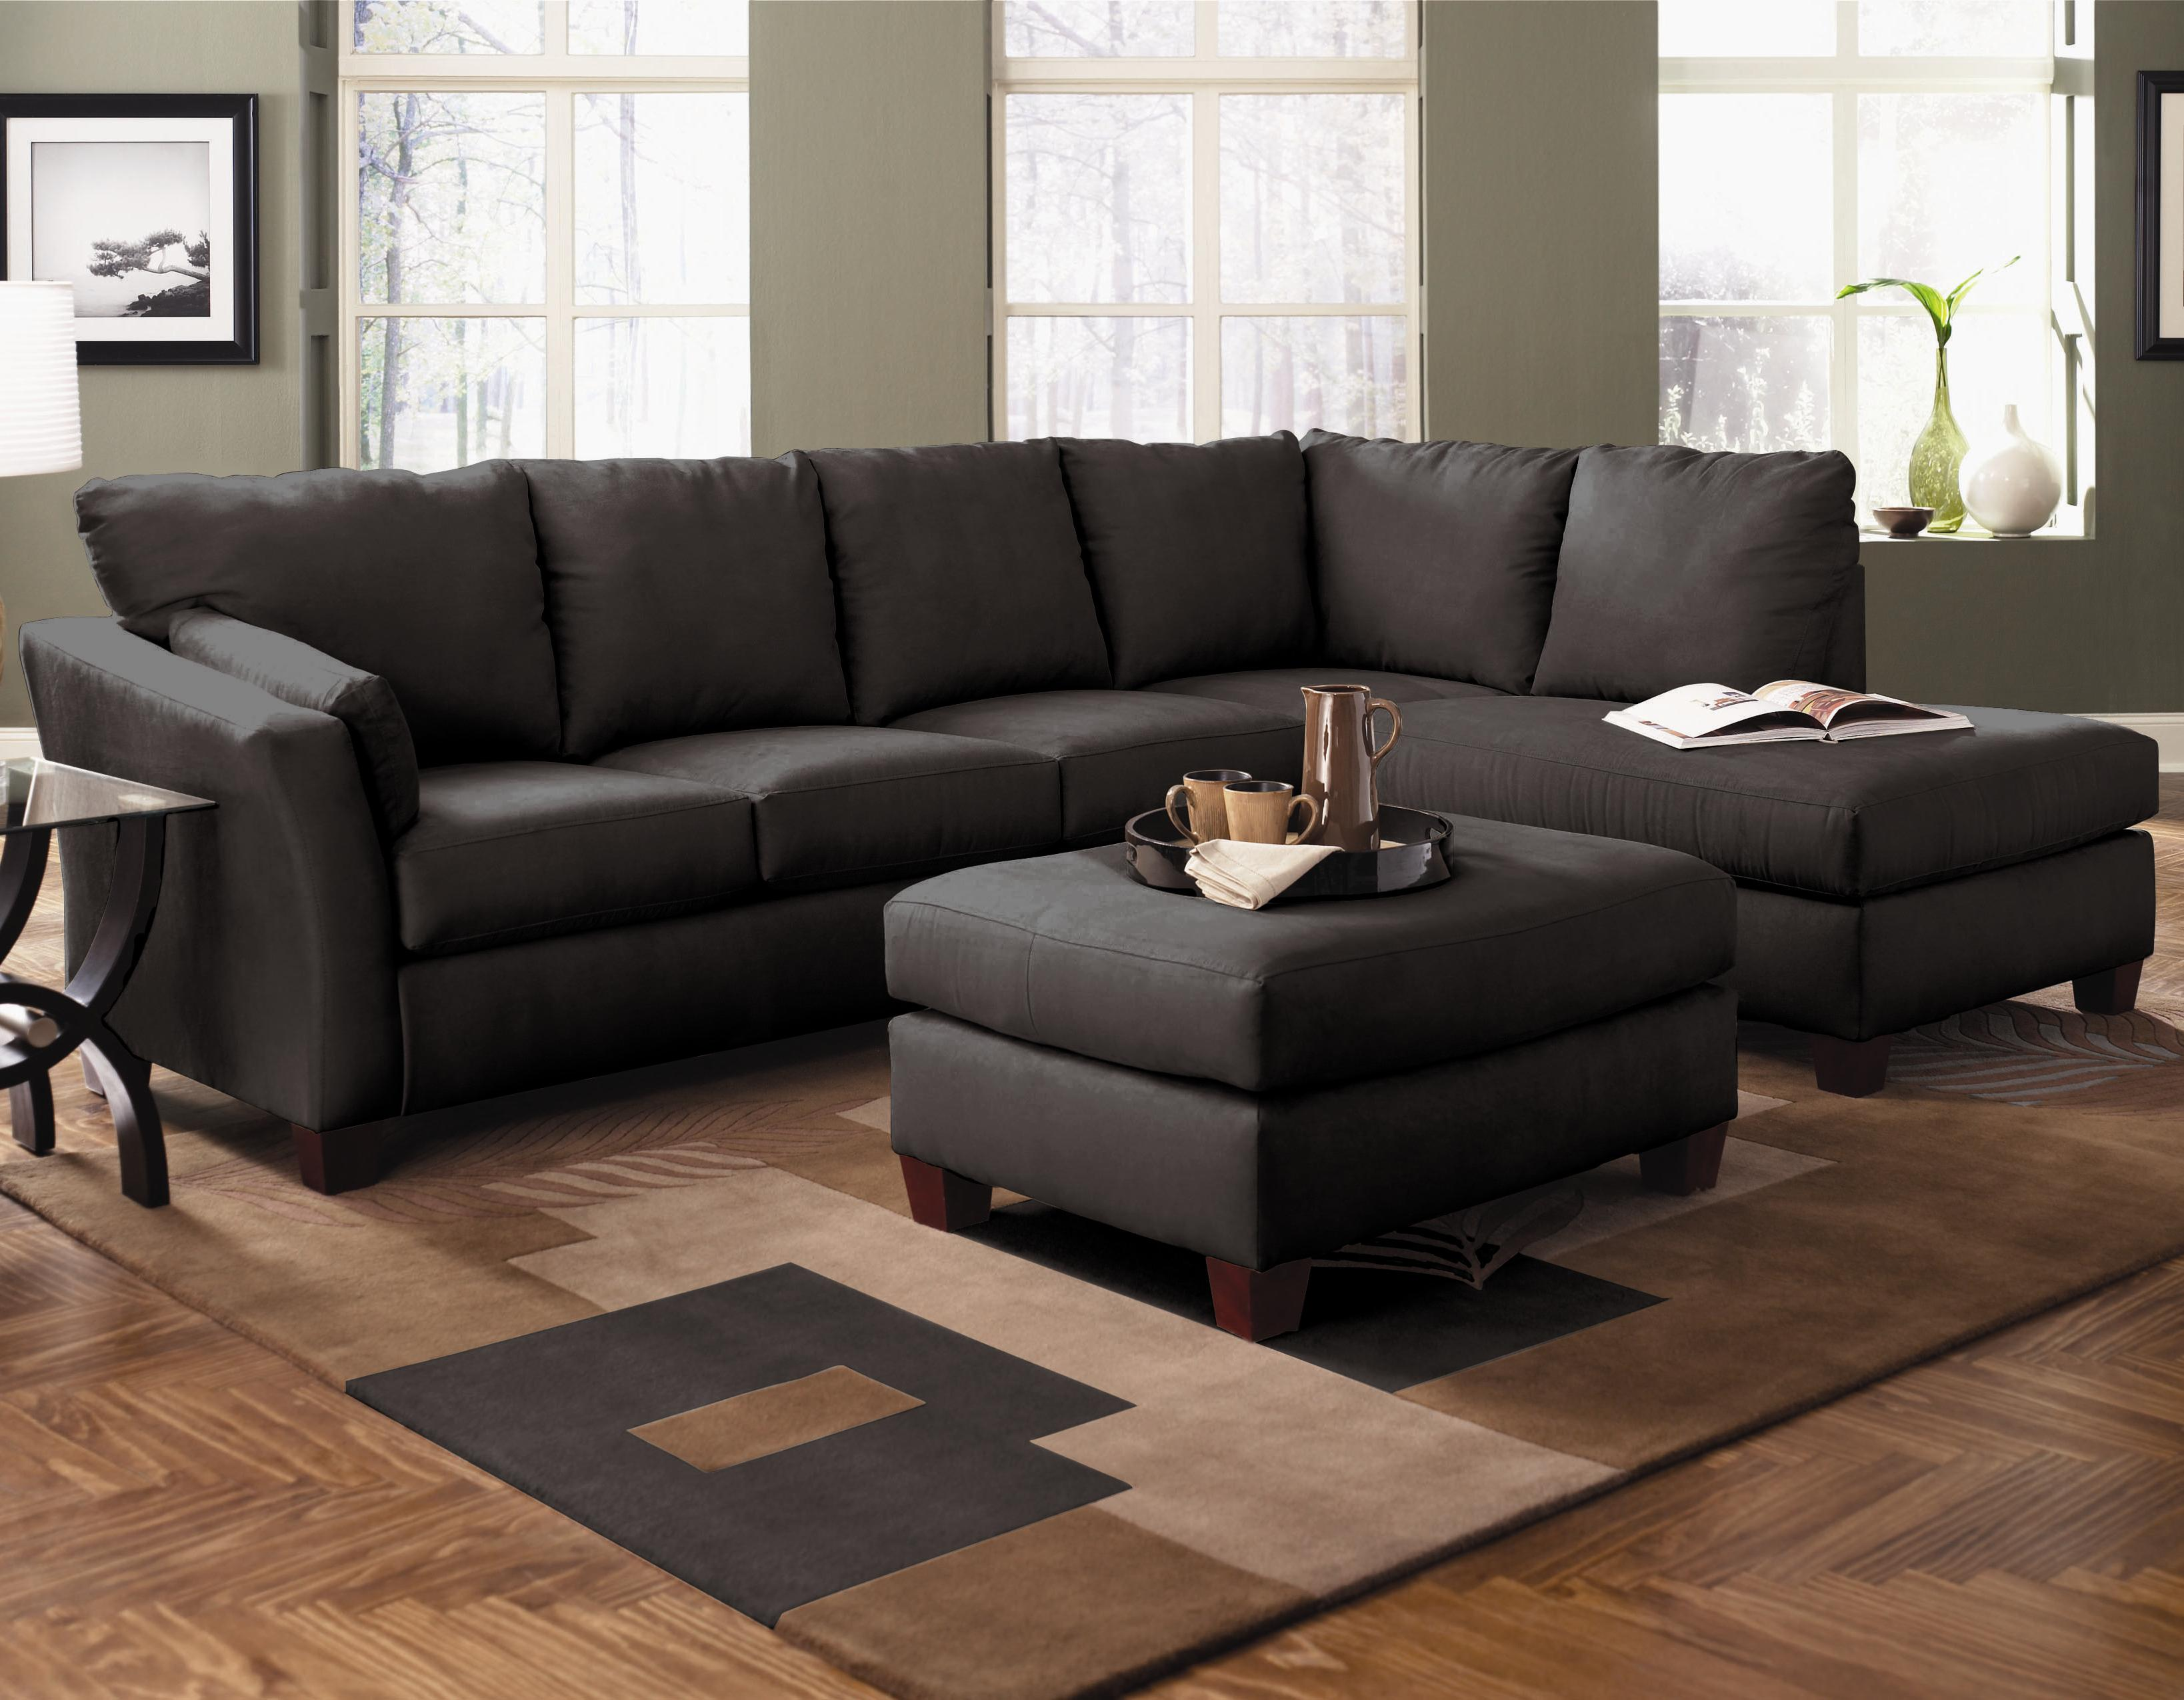 Two Piece Sectional Sofa With Chaise Affordable Furniture